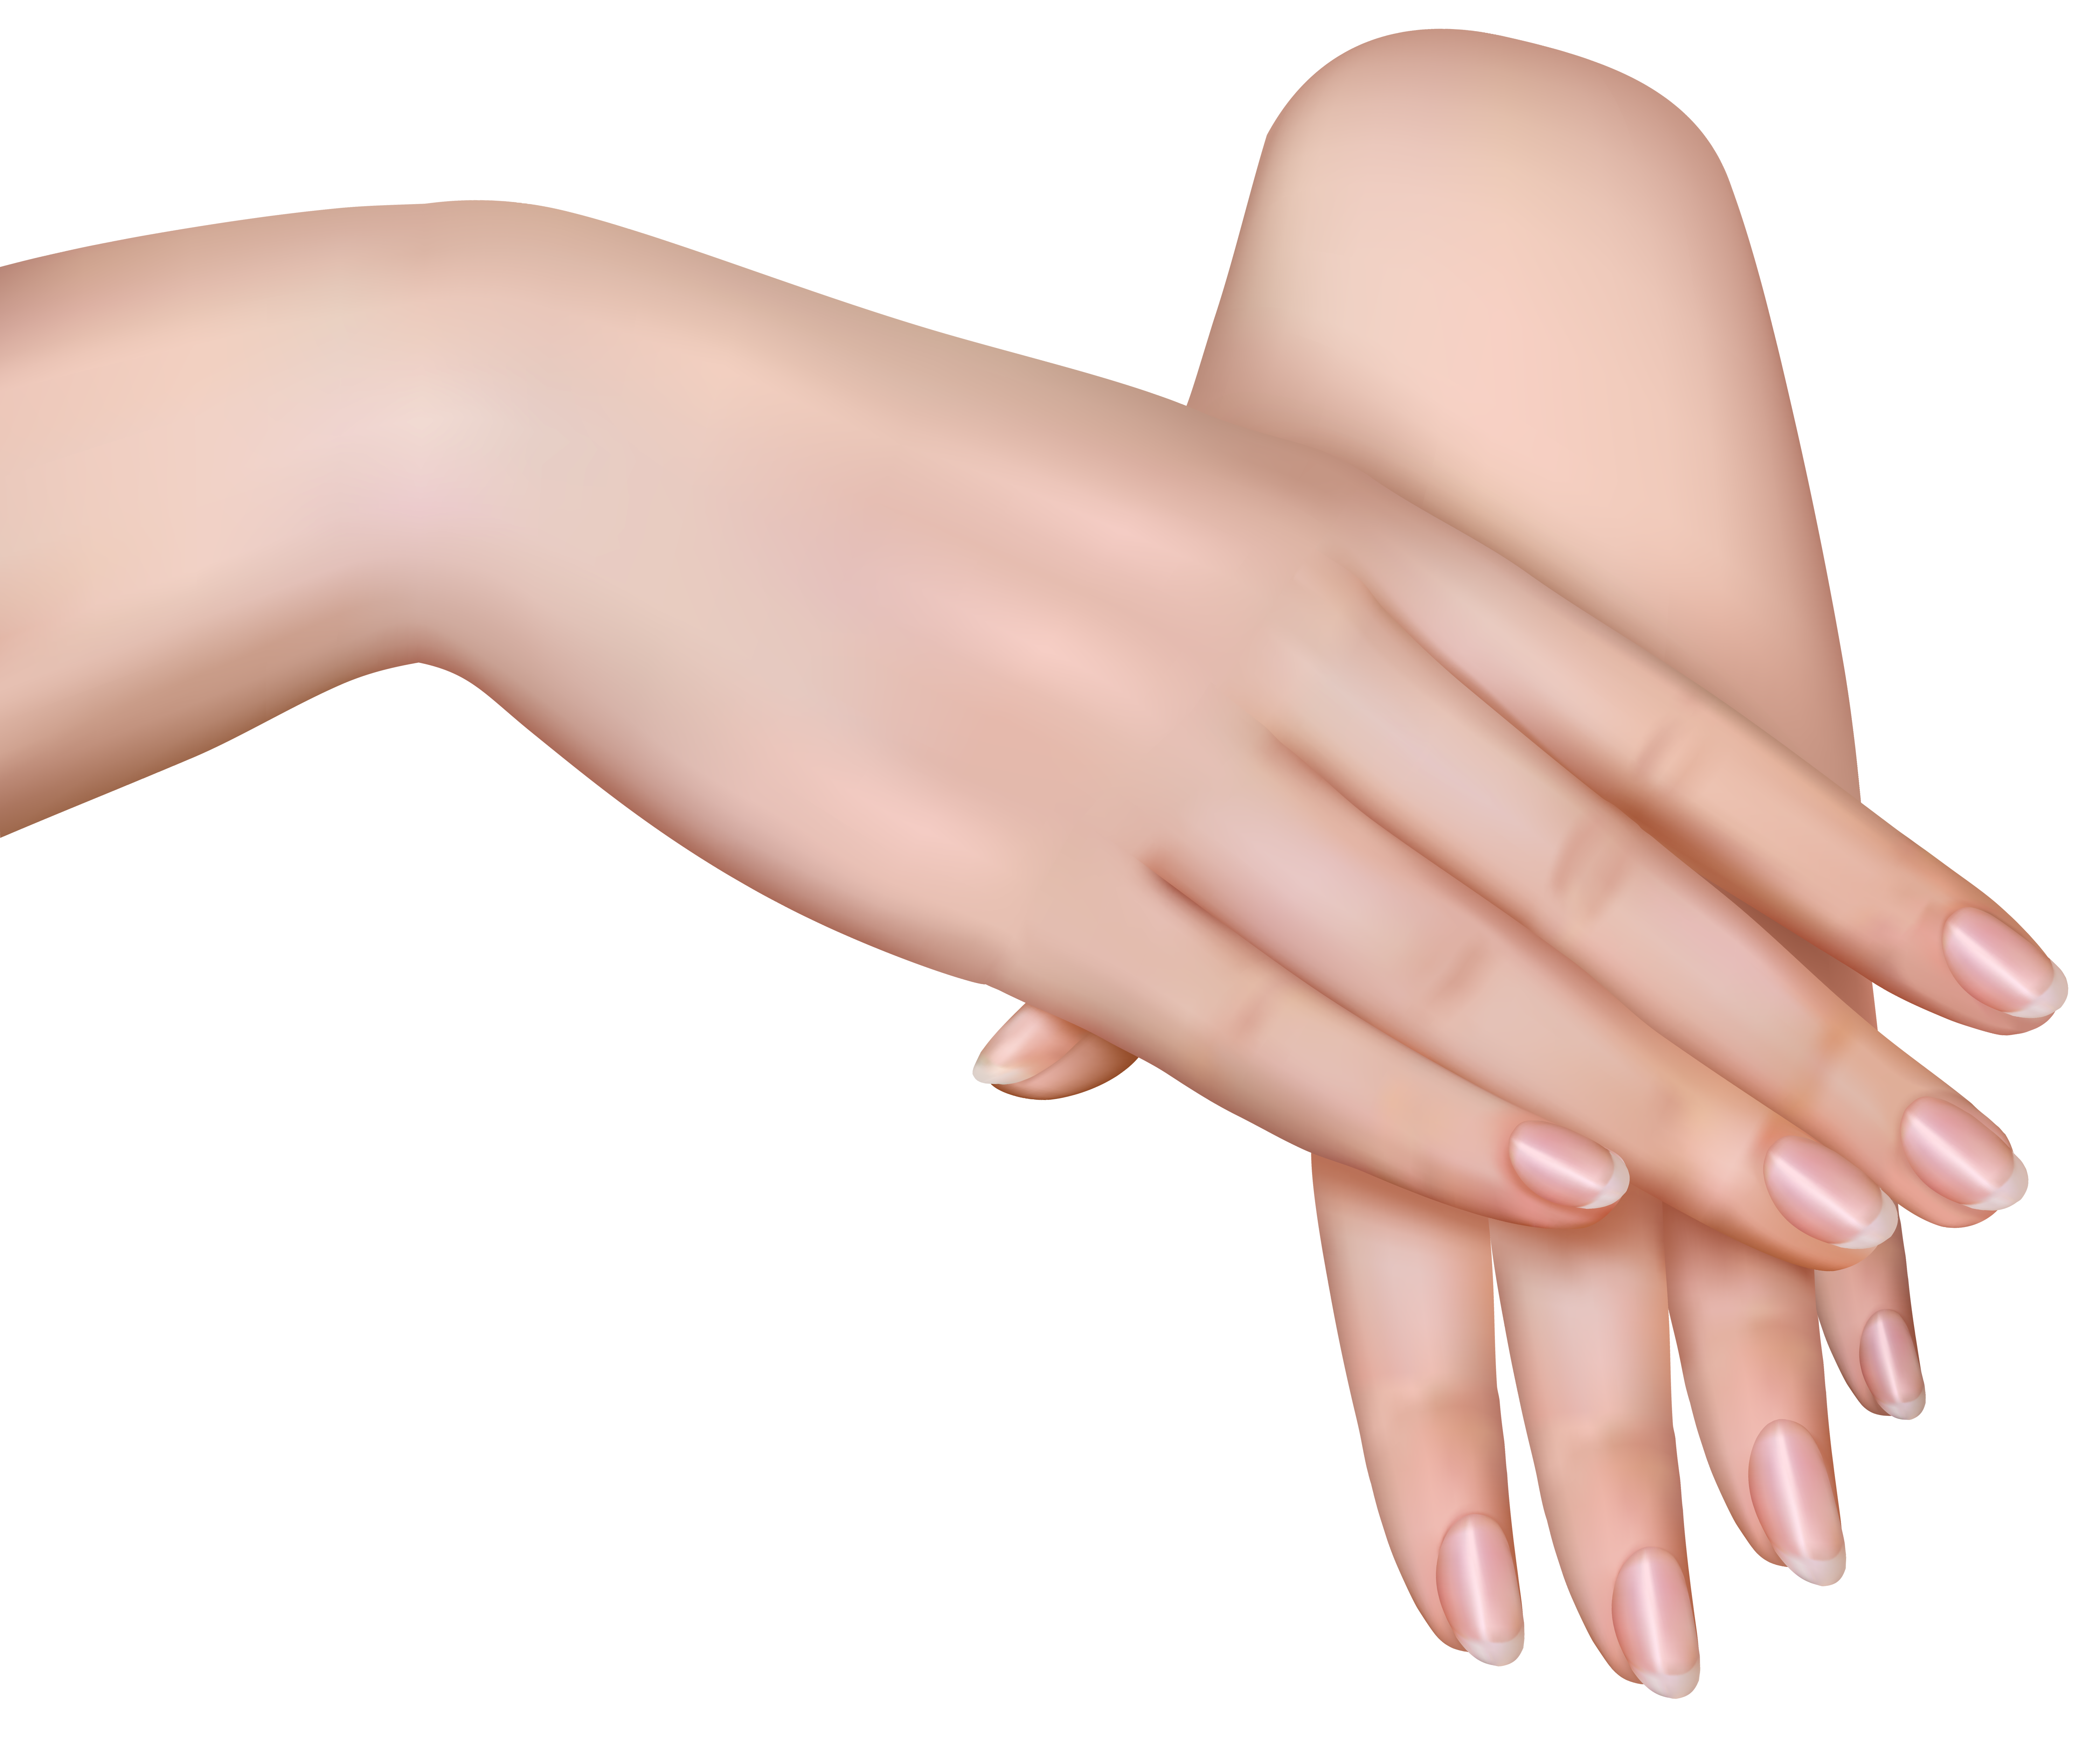 Nail clipart woman hand  size Hands View High